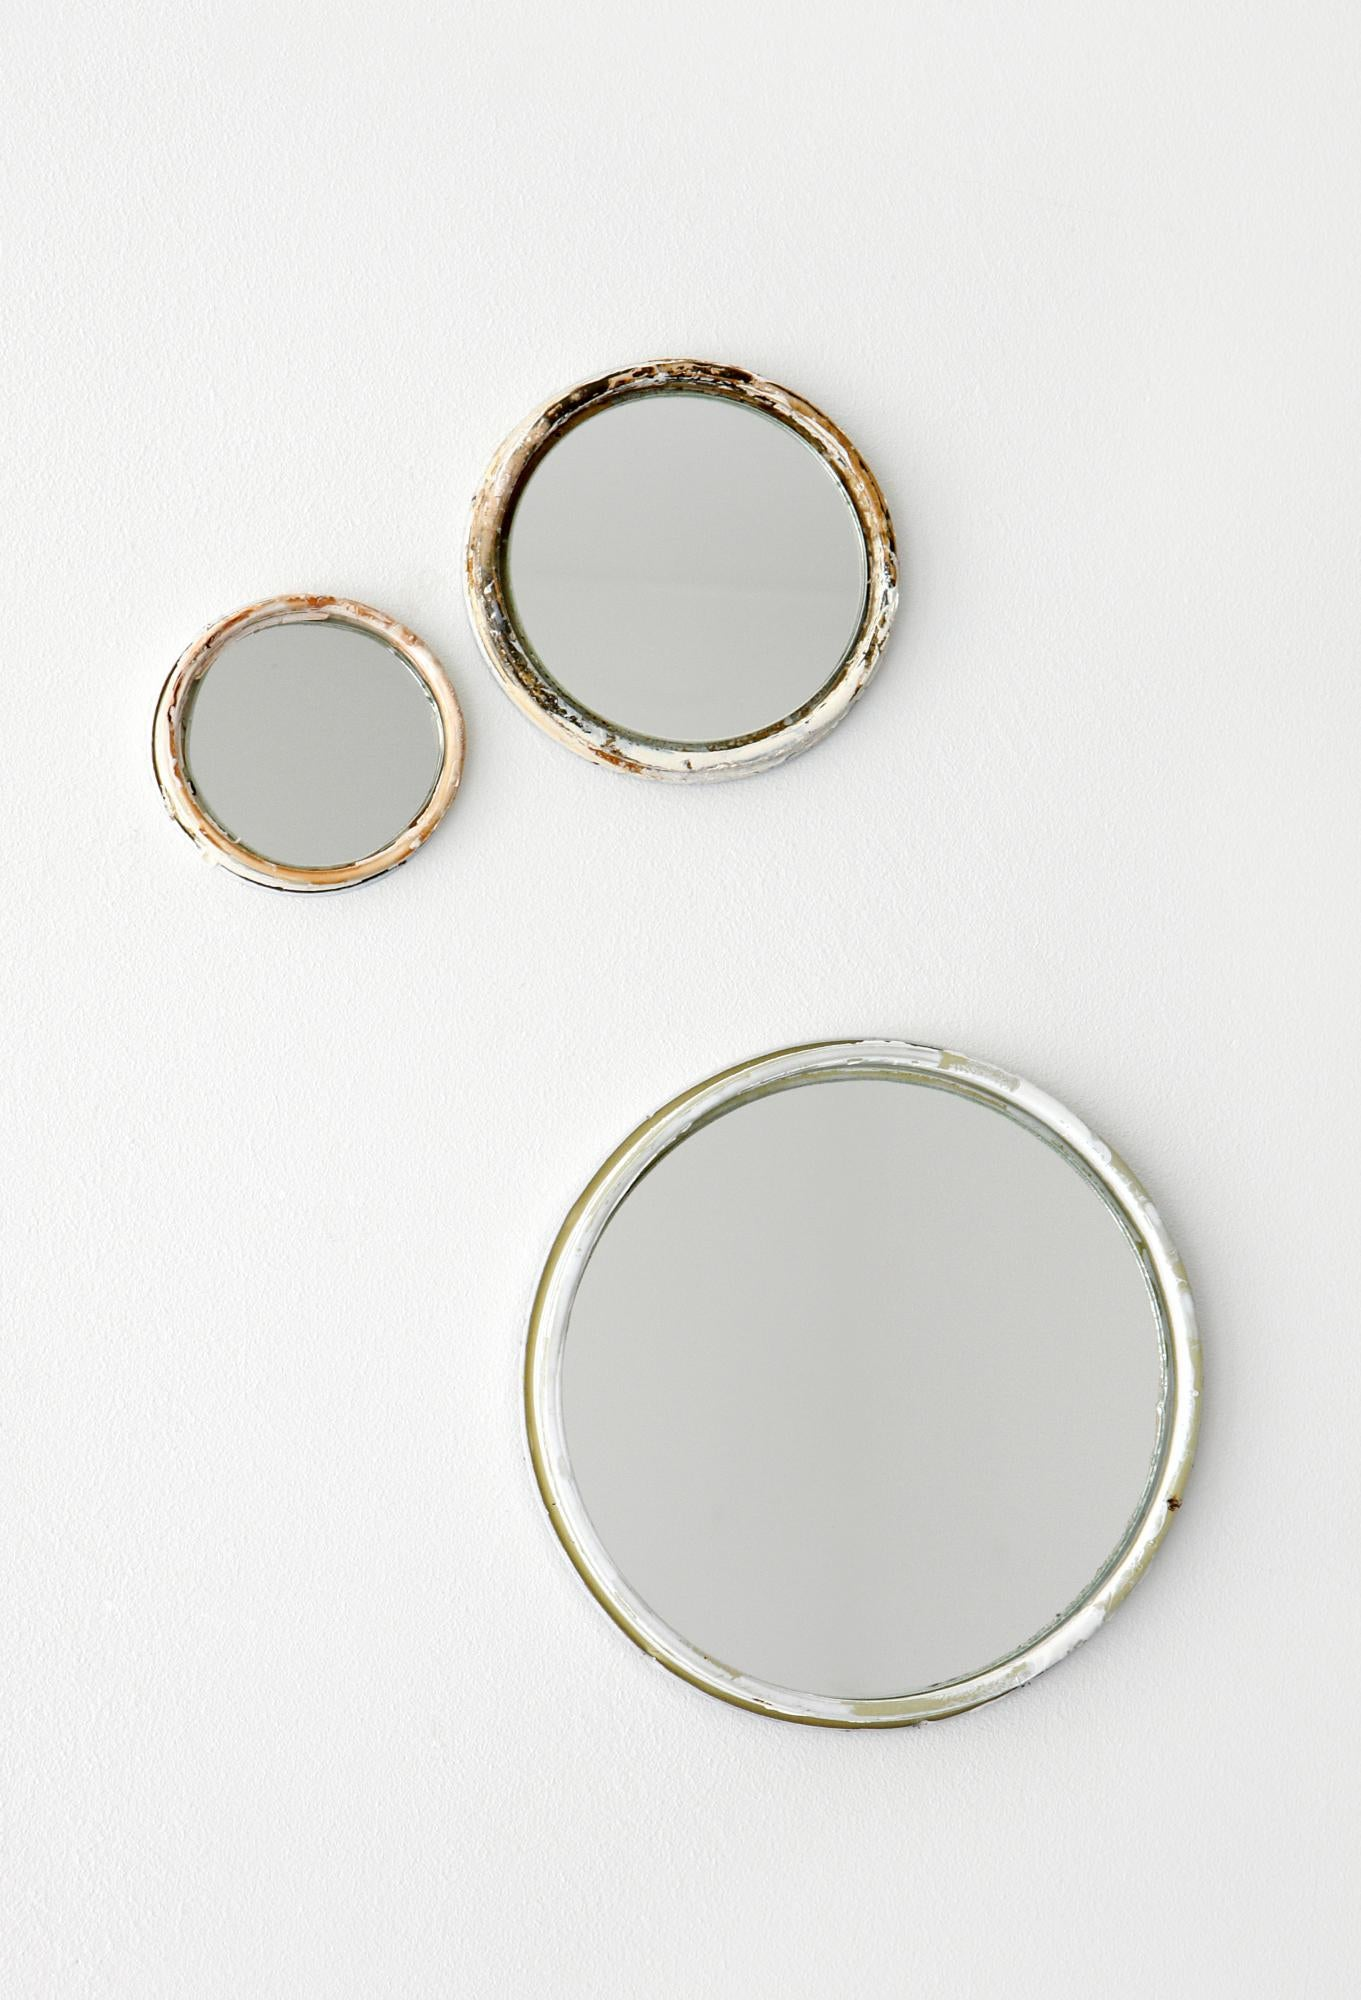 Valerie Objects - Mirror Set of 3 - ouimillie